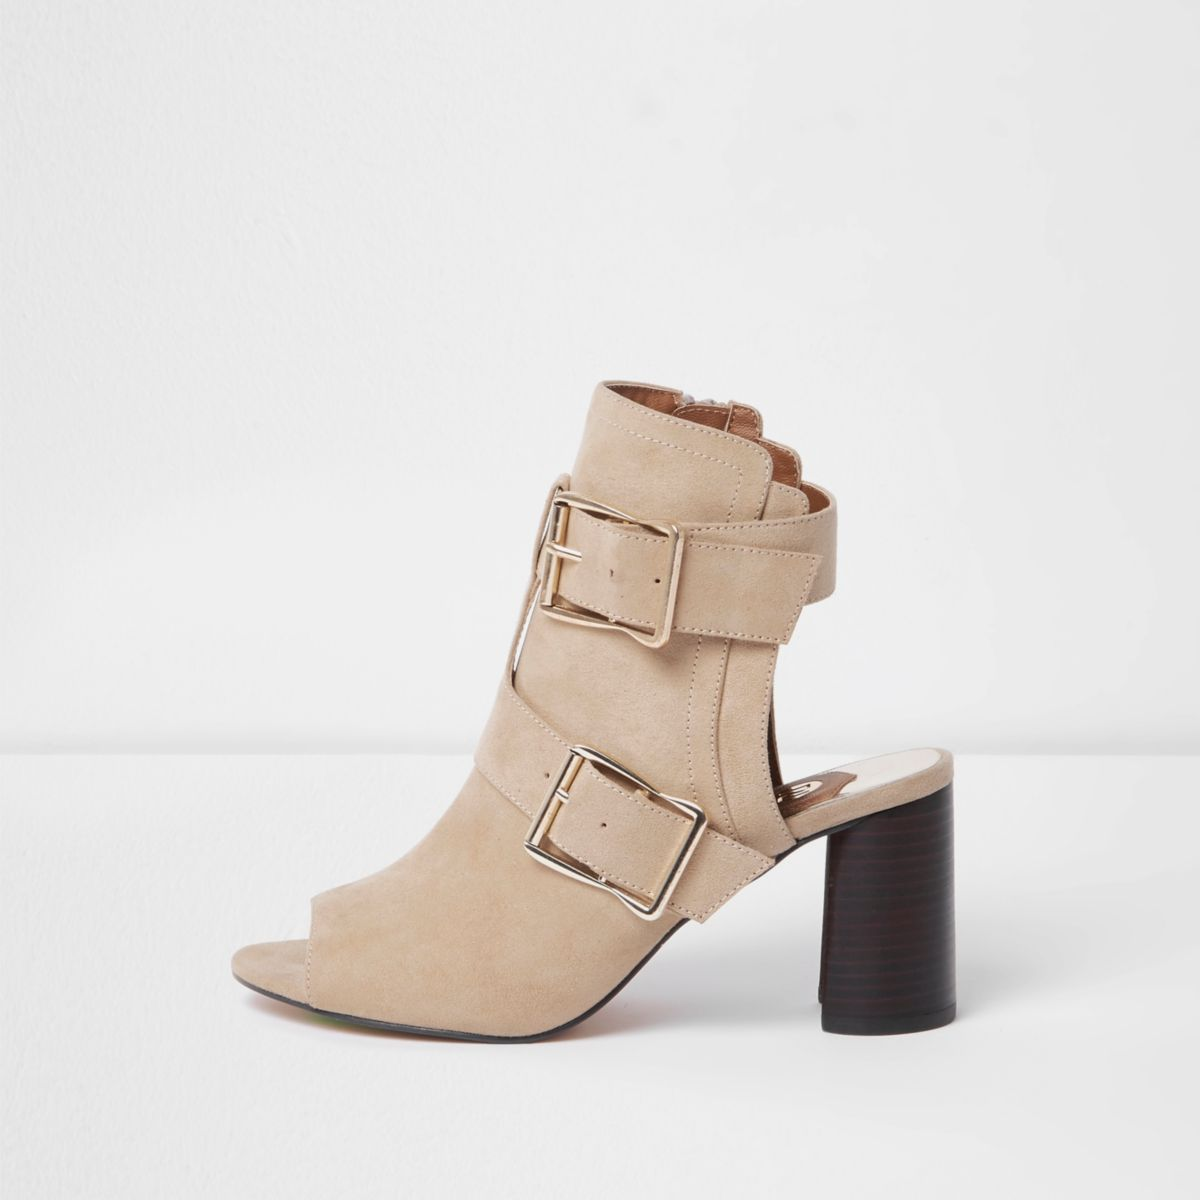 Beige multi buckle block heel shoe boots